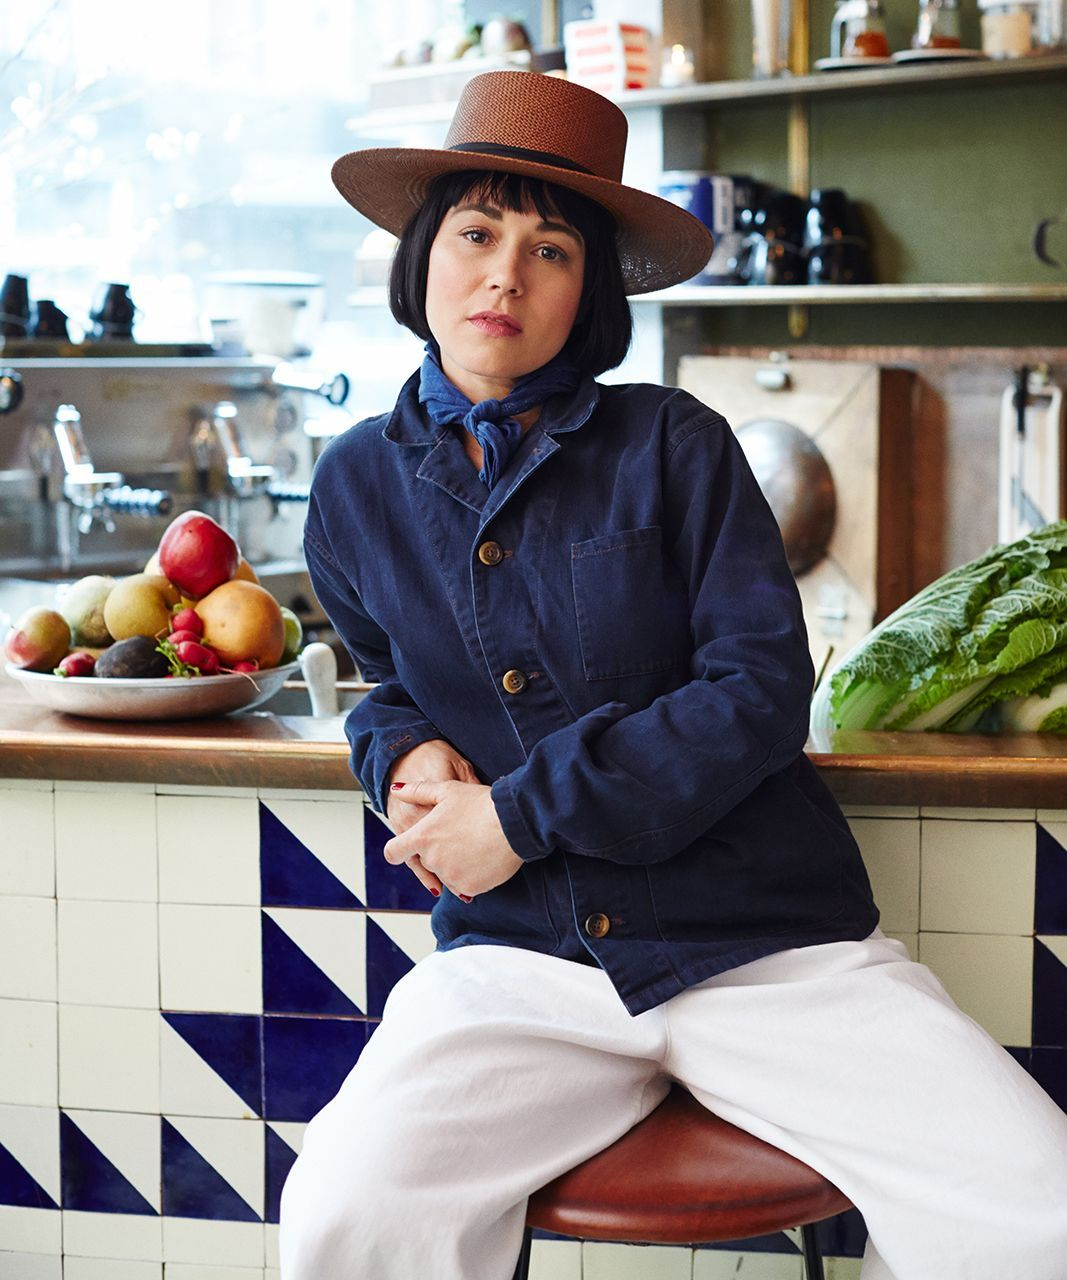 Small-Space Kitchen Tips — How To Cook At Home   Camille Becerra, chef at NYC restaurant Navy, spills her tips on creating a kitchen environment that actually encourages you to cook. #refinery29 http://www.refinery29.com/small-space-kitchen-tips